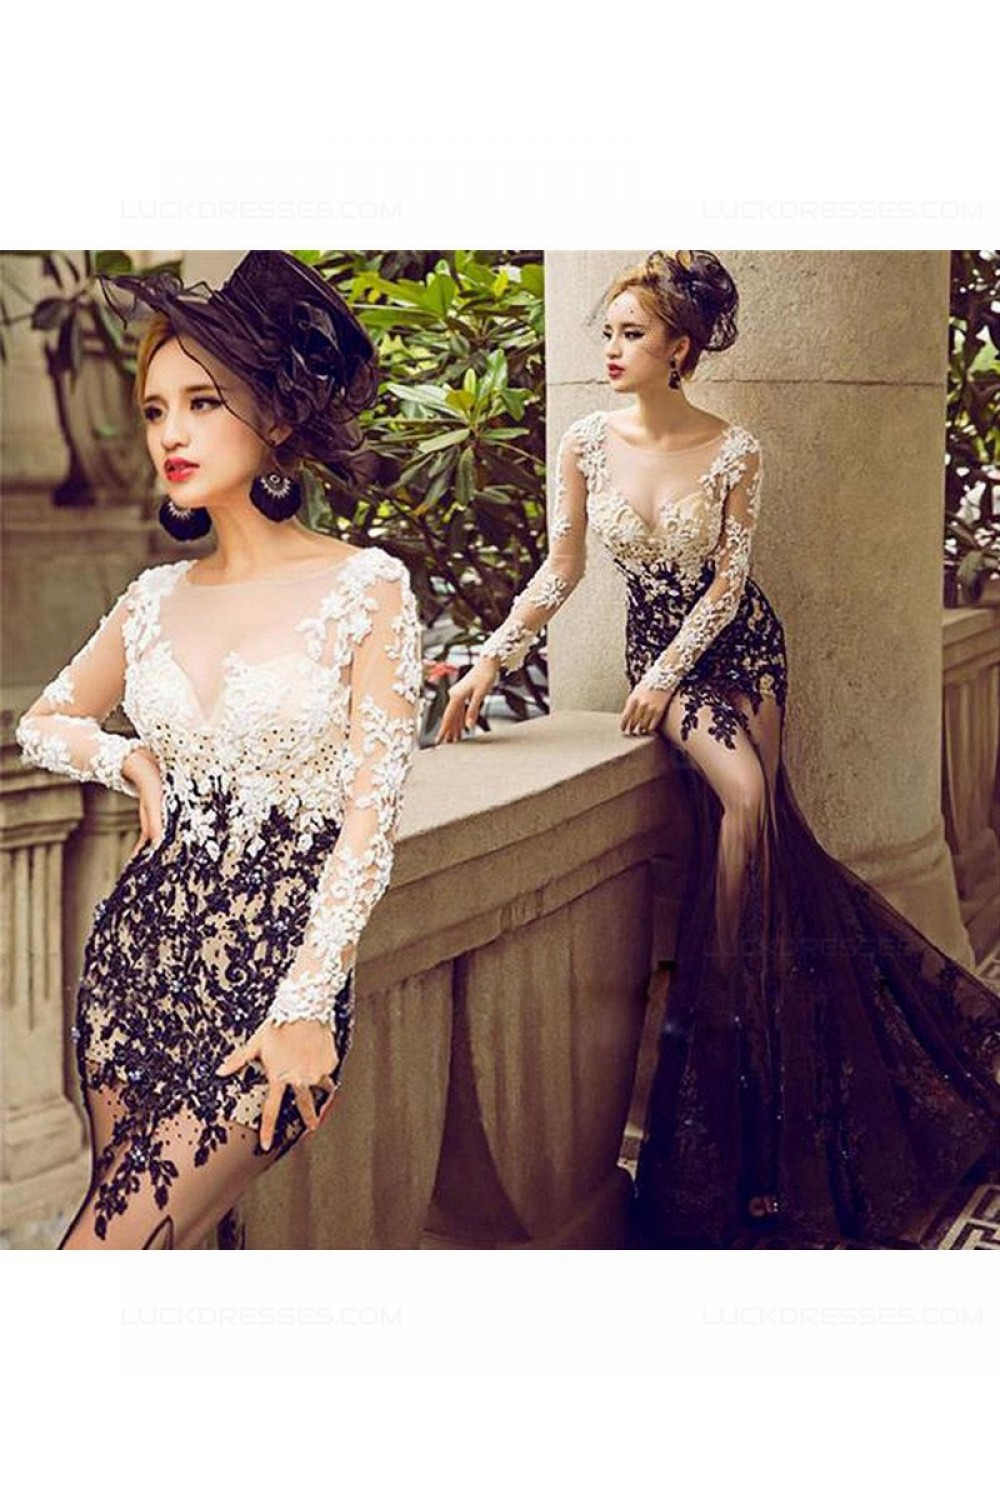 207d93b880bf Sexy Mermaid Long Sleeves Black White Lace Prom Dresses Party Evening Gowns  3020484